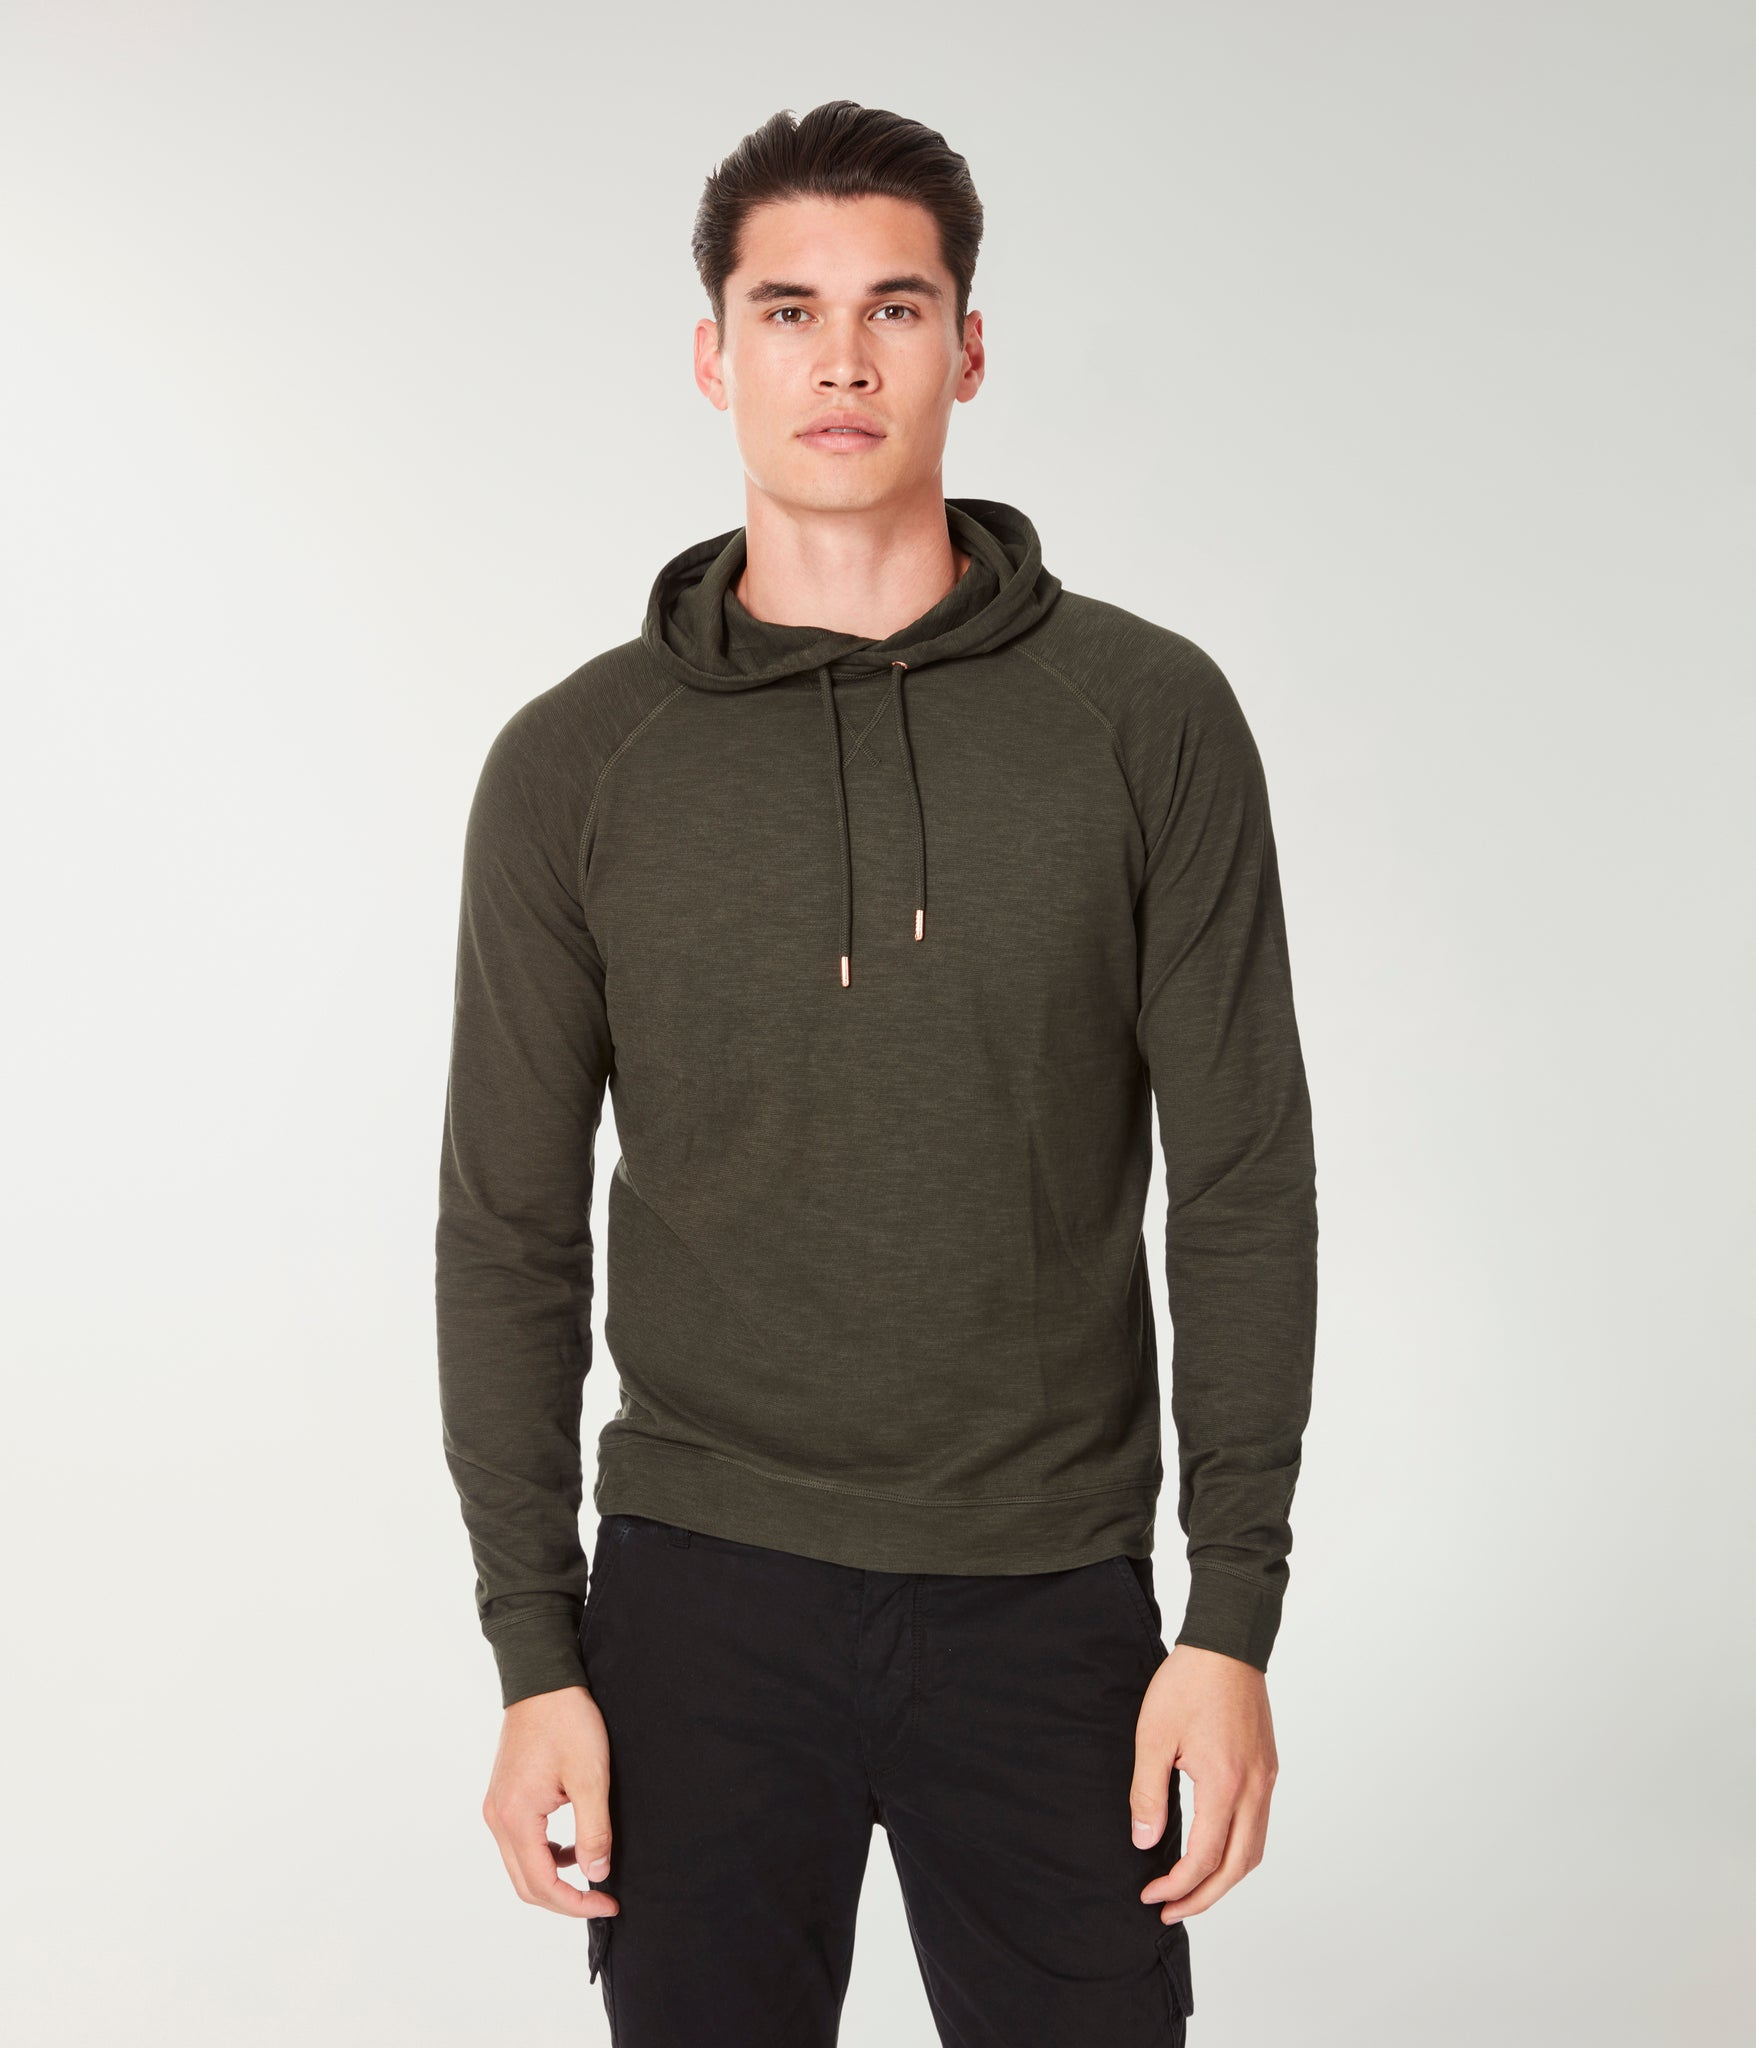 Soft Slub Jersey Legend Hoodie - Rifle Green